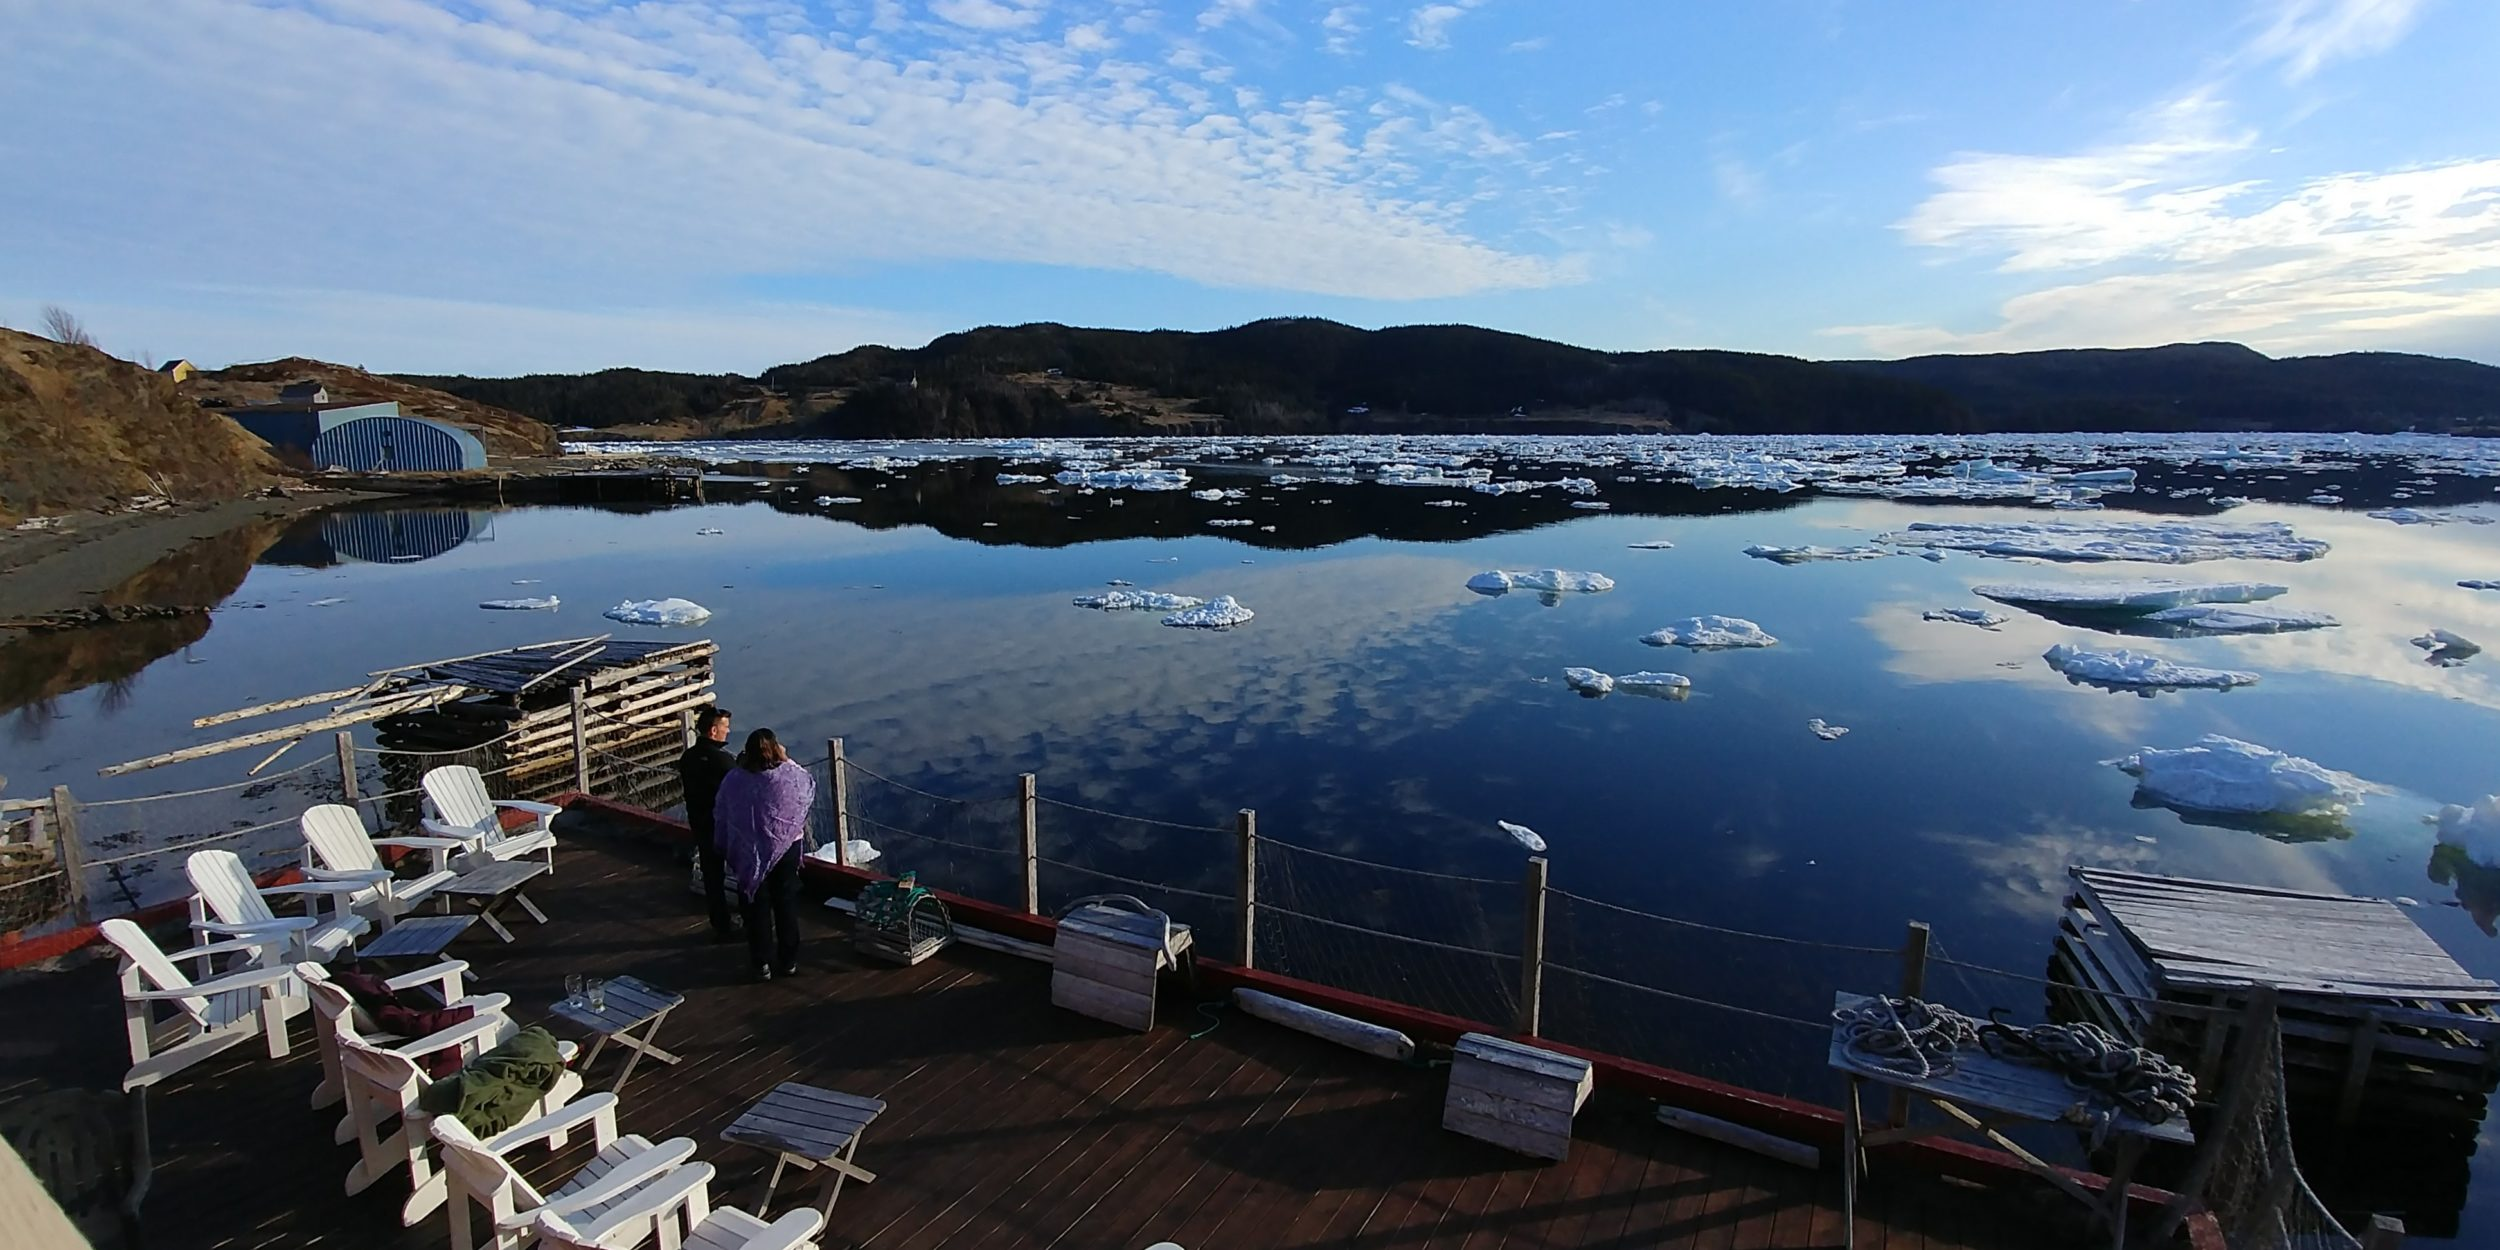 White deck chairs overlook an icy cove in Trinity